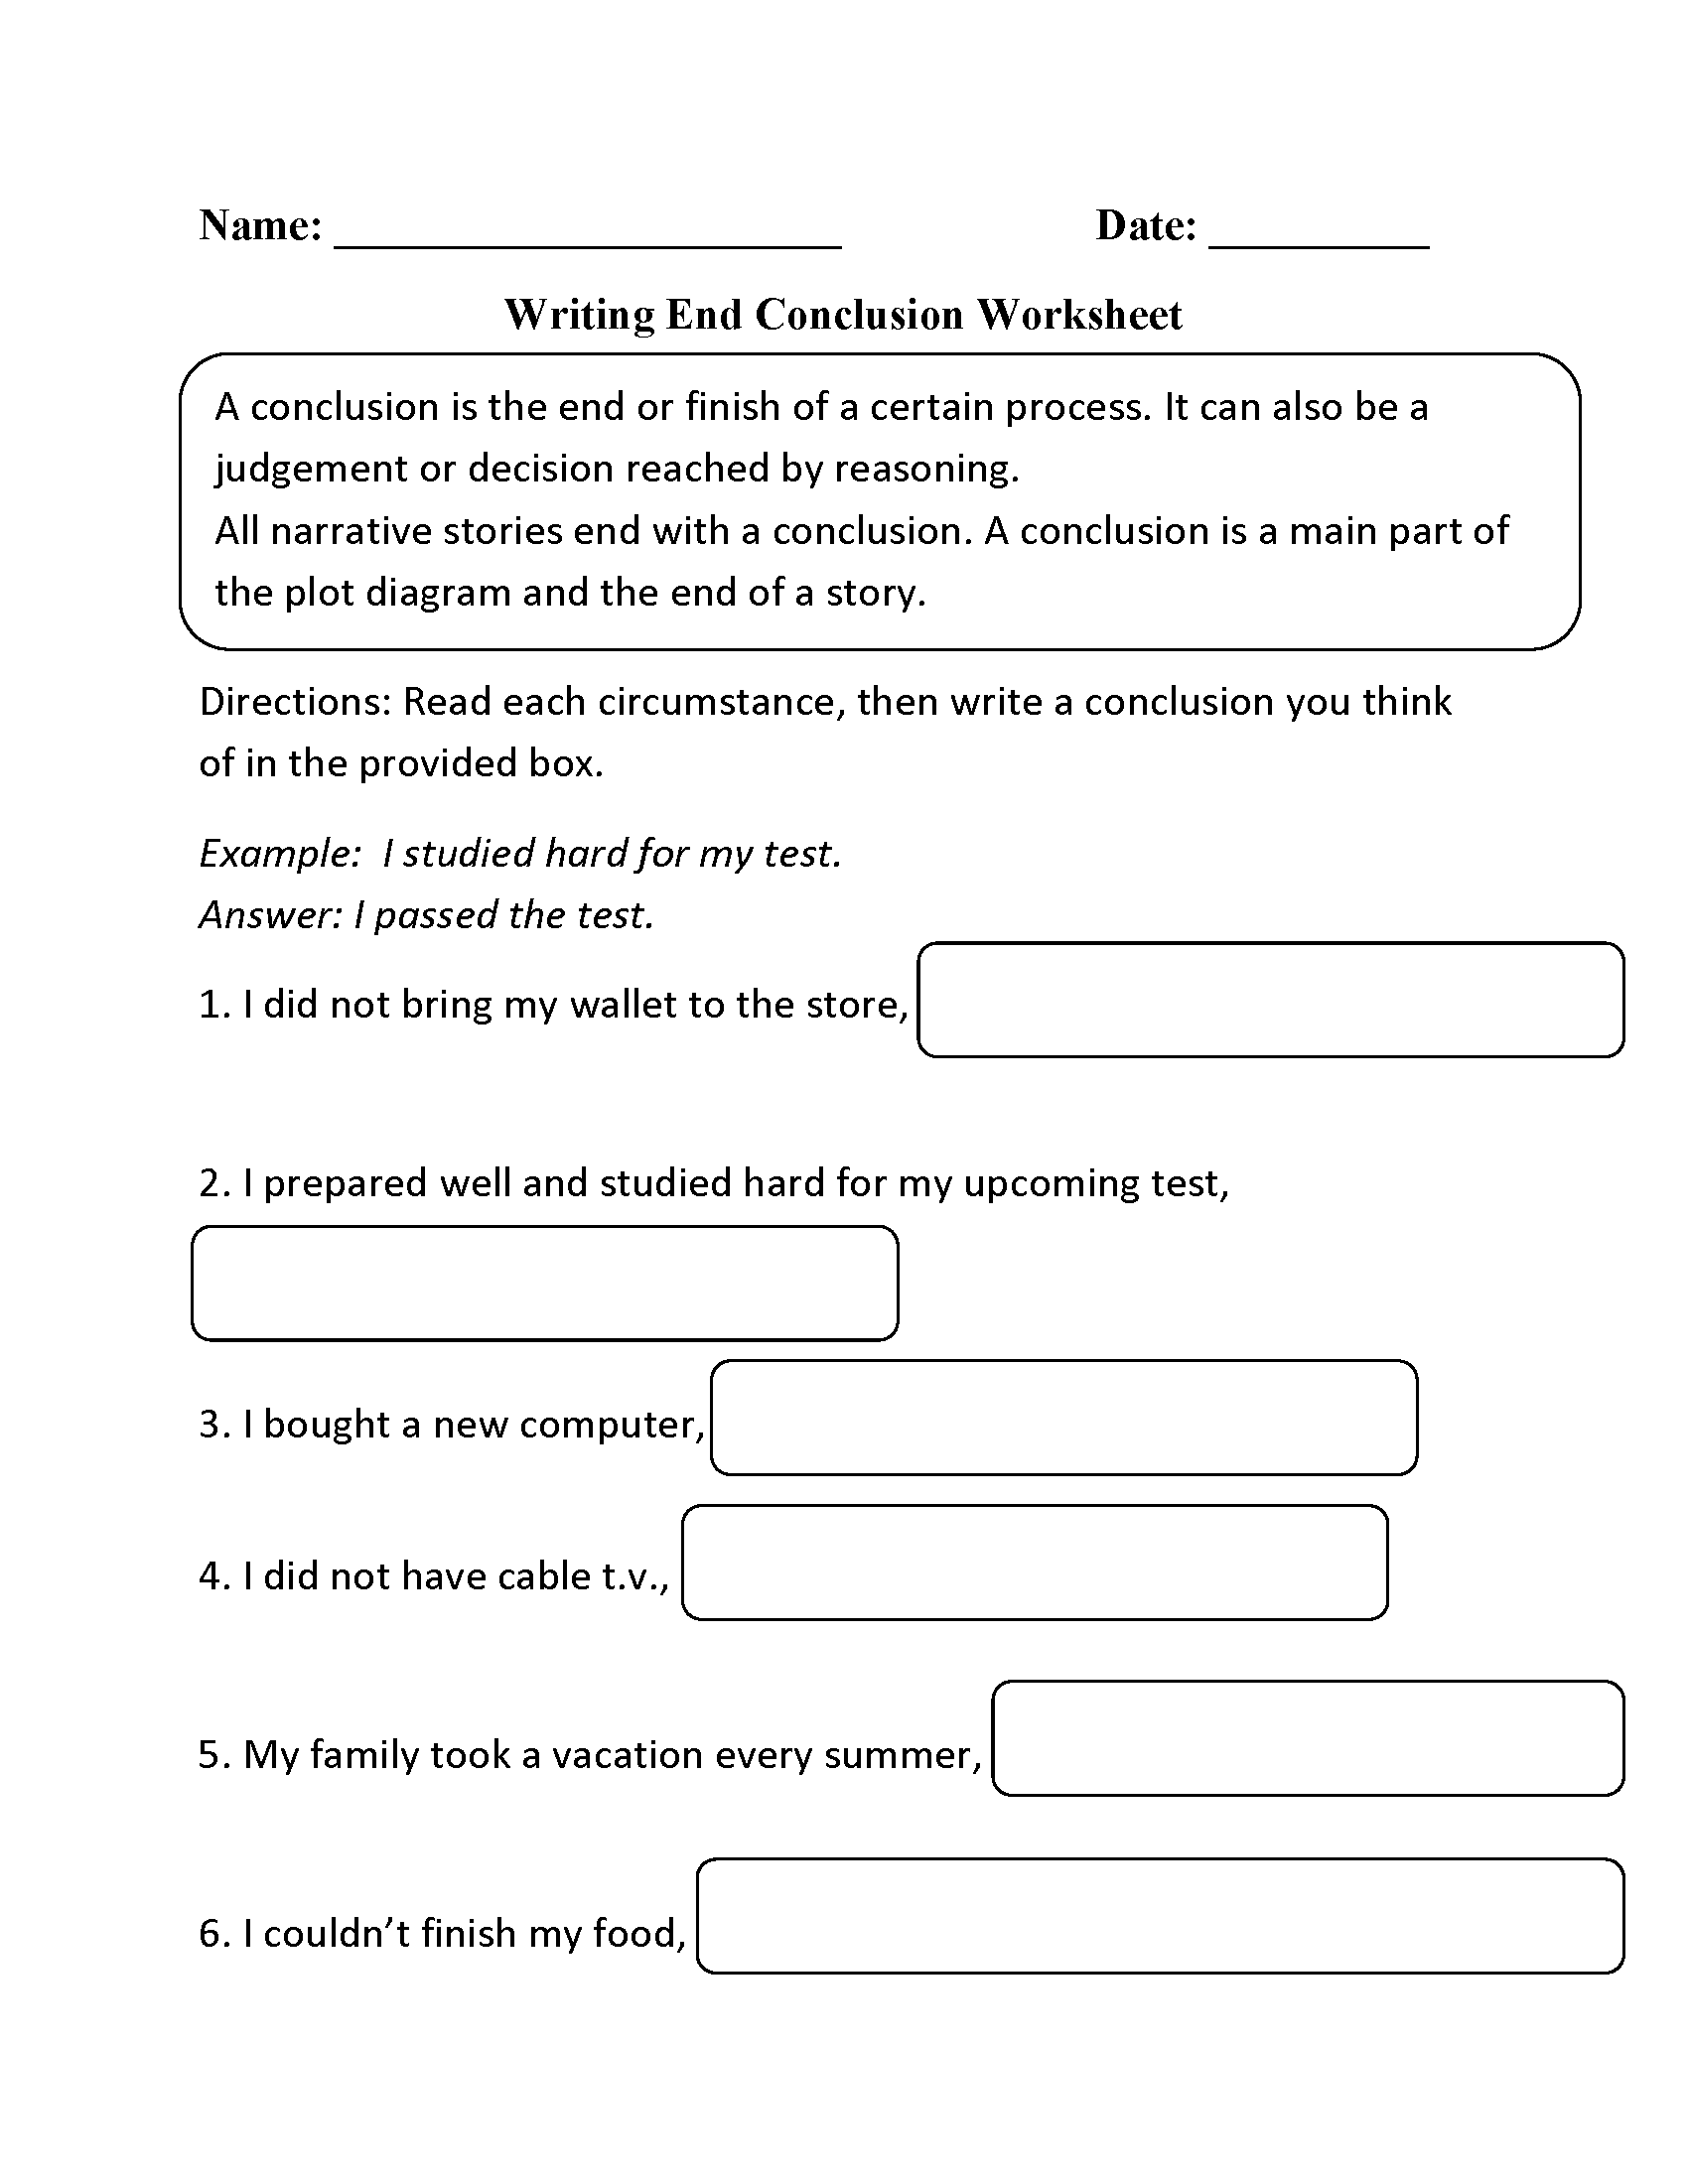 Writing End Conclusion Worksheets